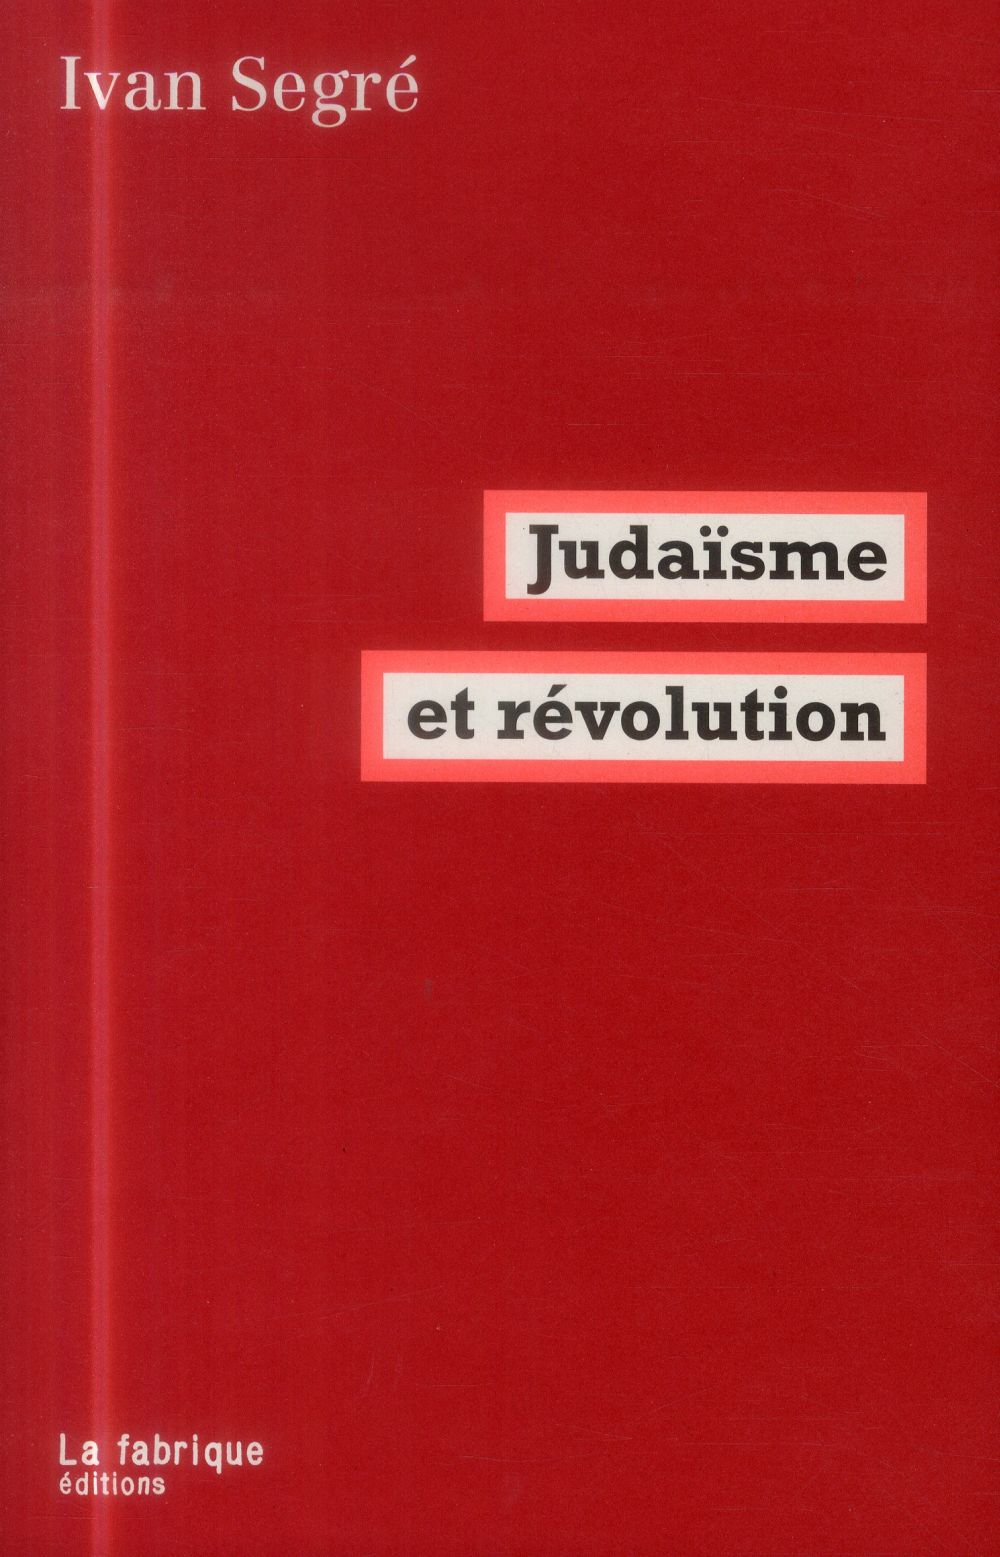 JUDAISME ET REVOLUTION